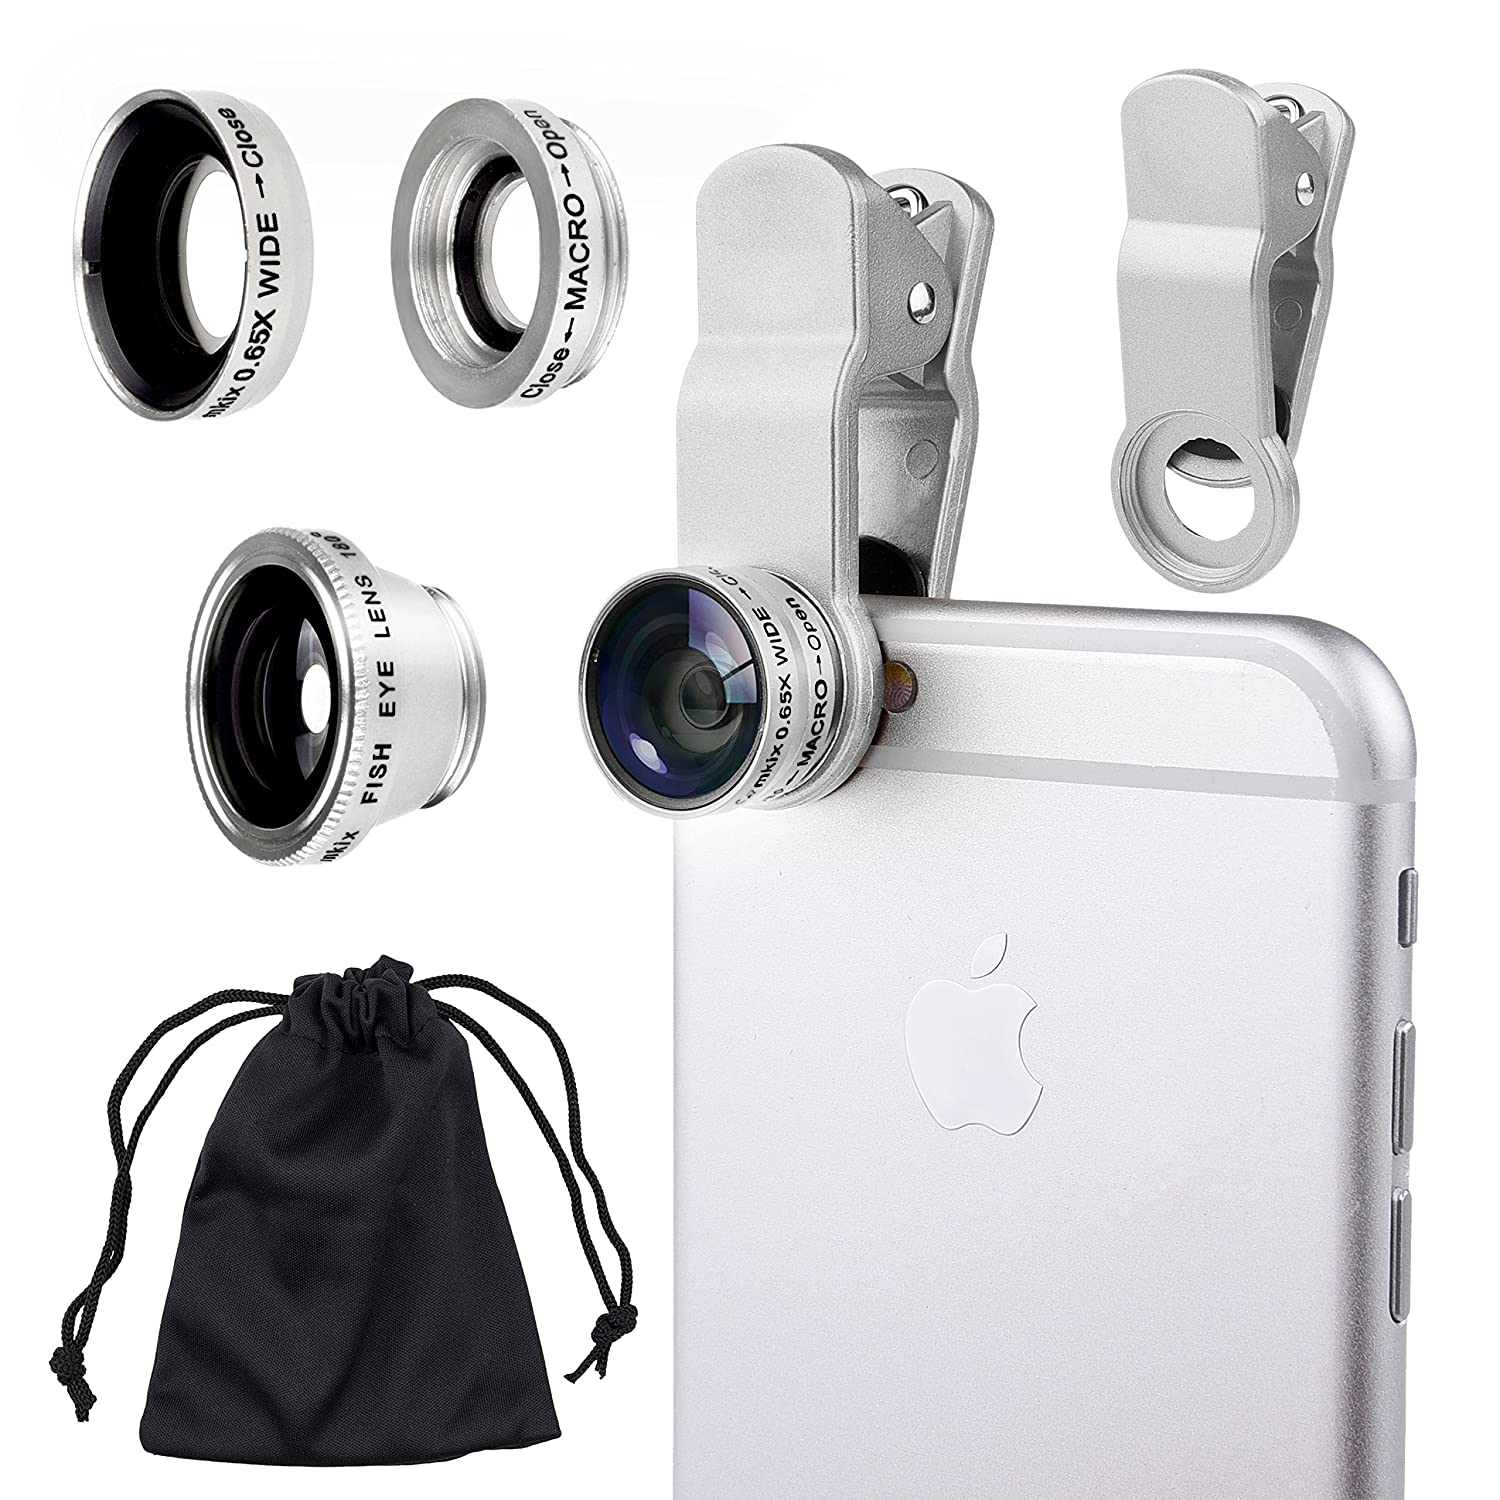 Amazon Universal 3 in 1 Camera Lens Kit for Smart phones including iPhone Samsung Galaxy HTC Motorola and More Tablets iPad